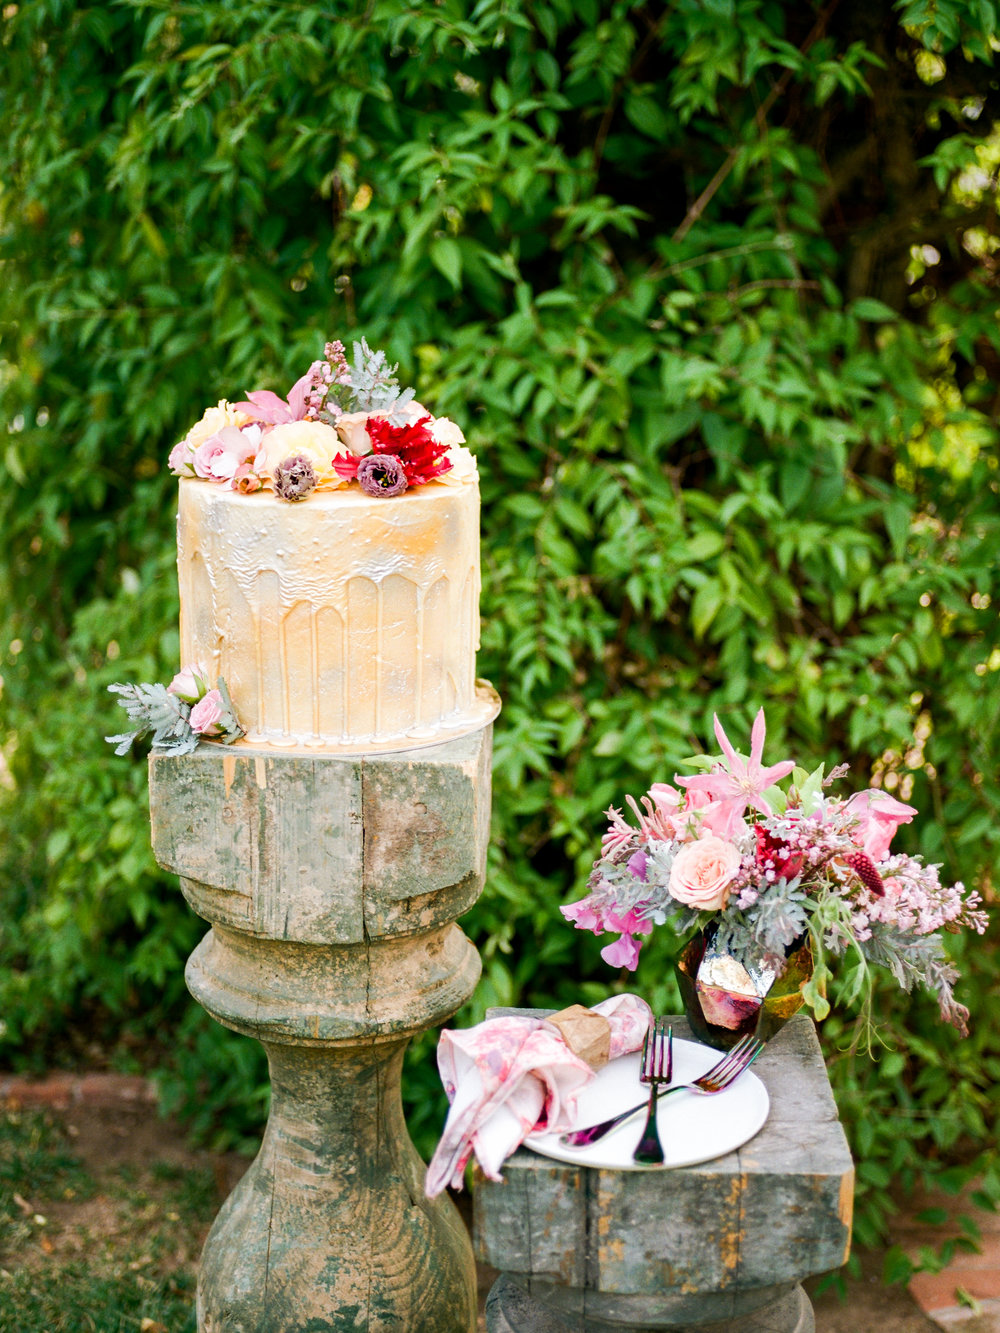 Anna Delores Photography_Wild Heart Events 05.16.17-694380110010.jpg